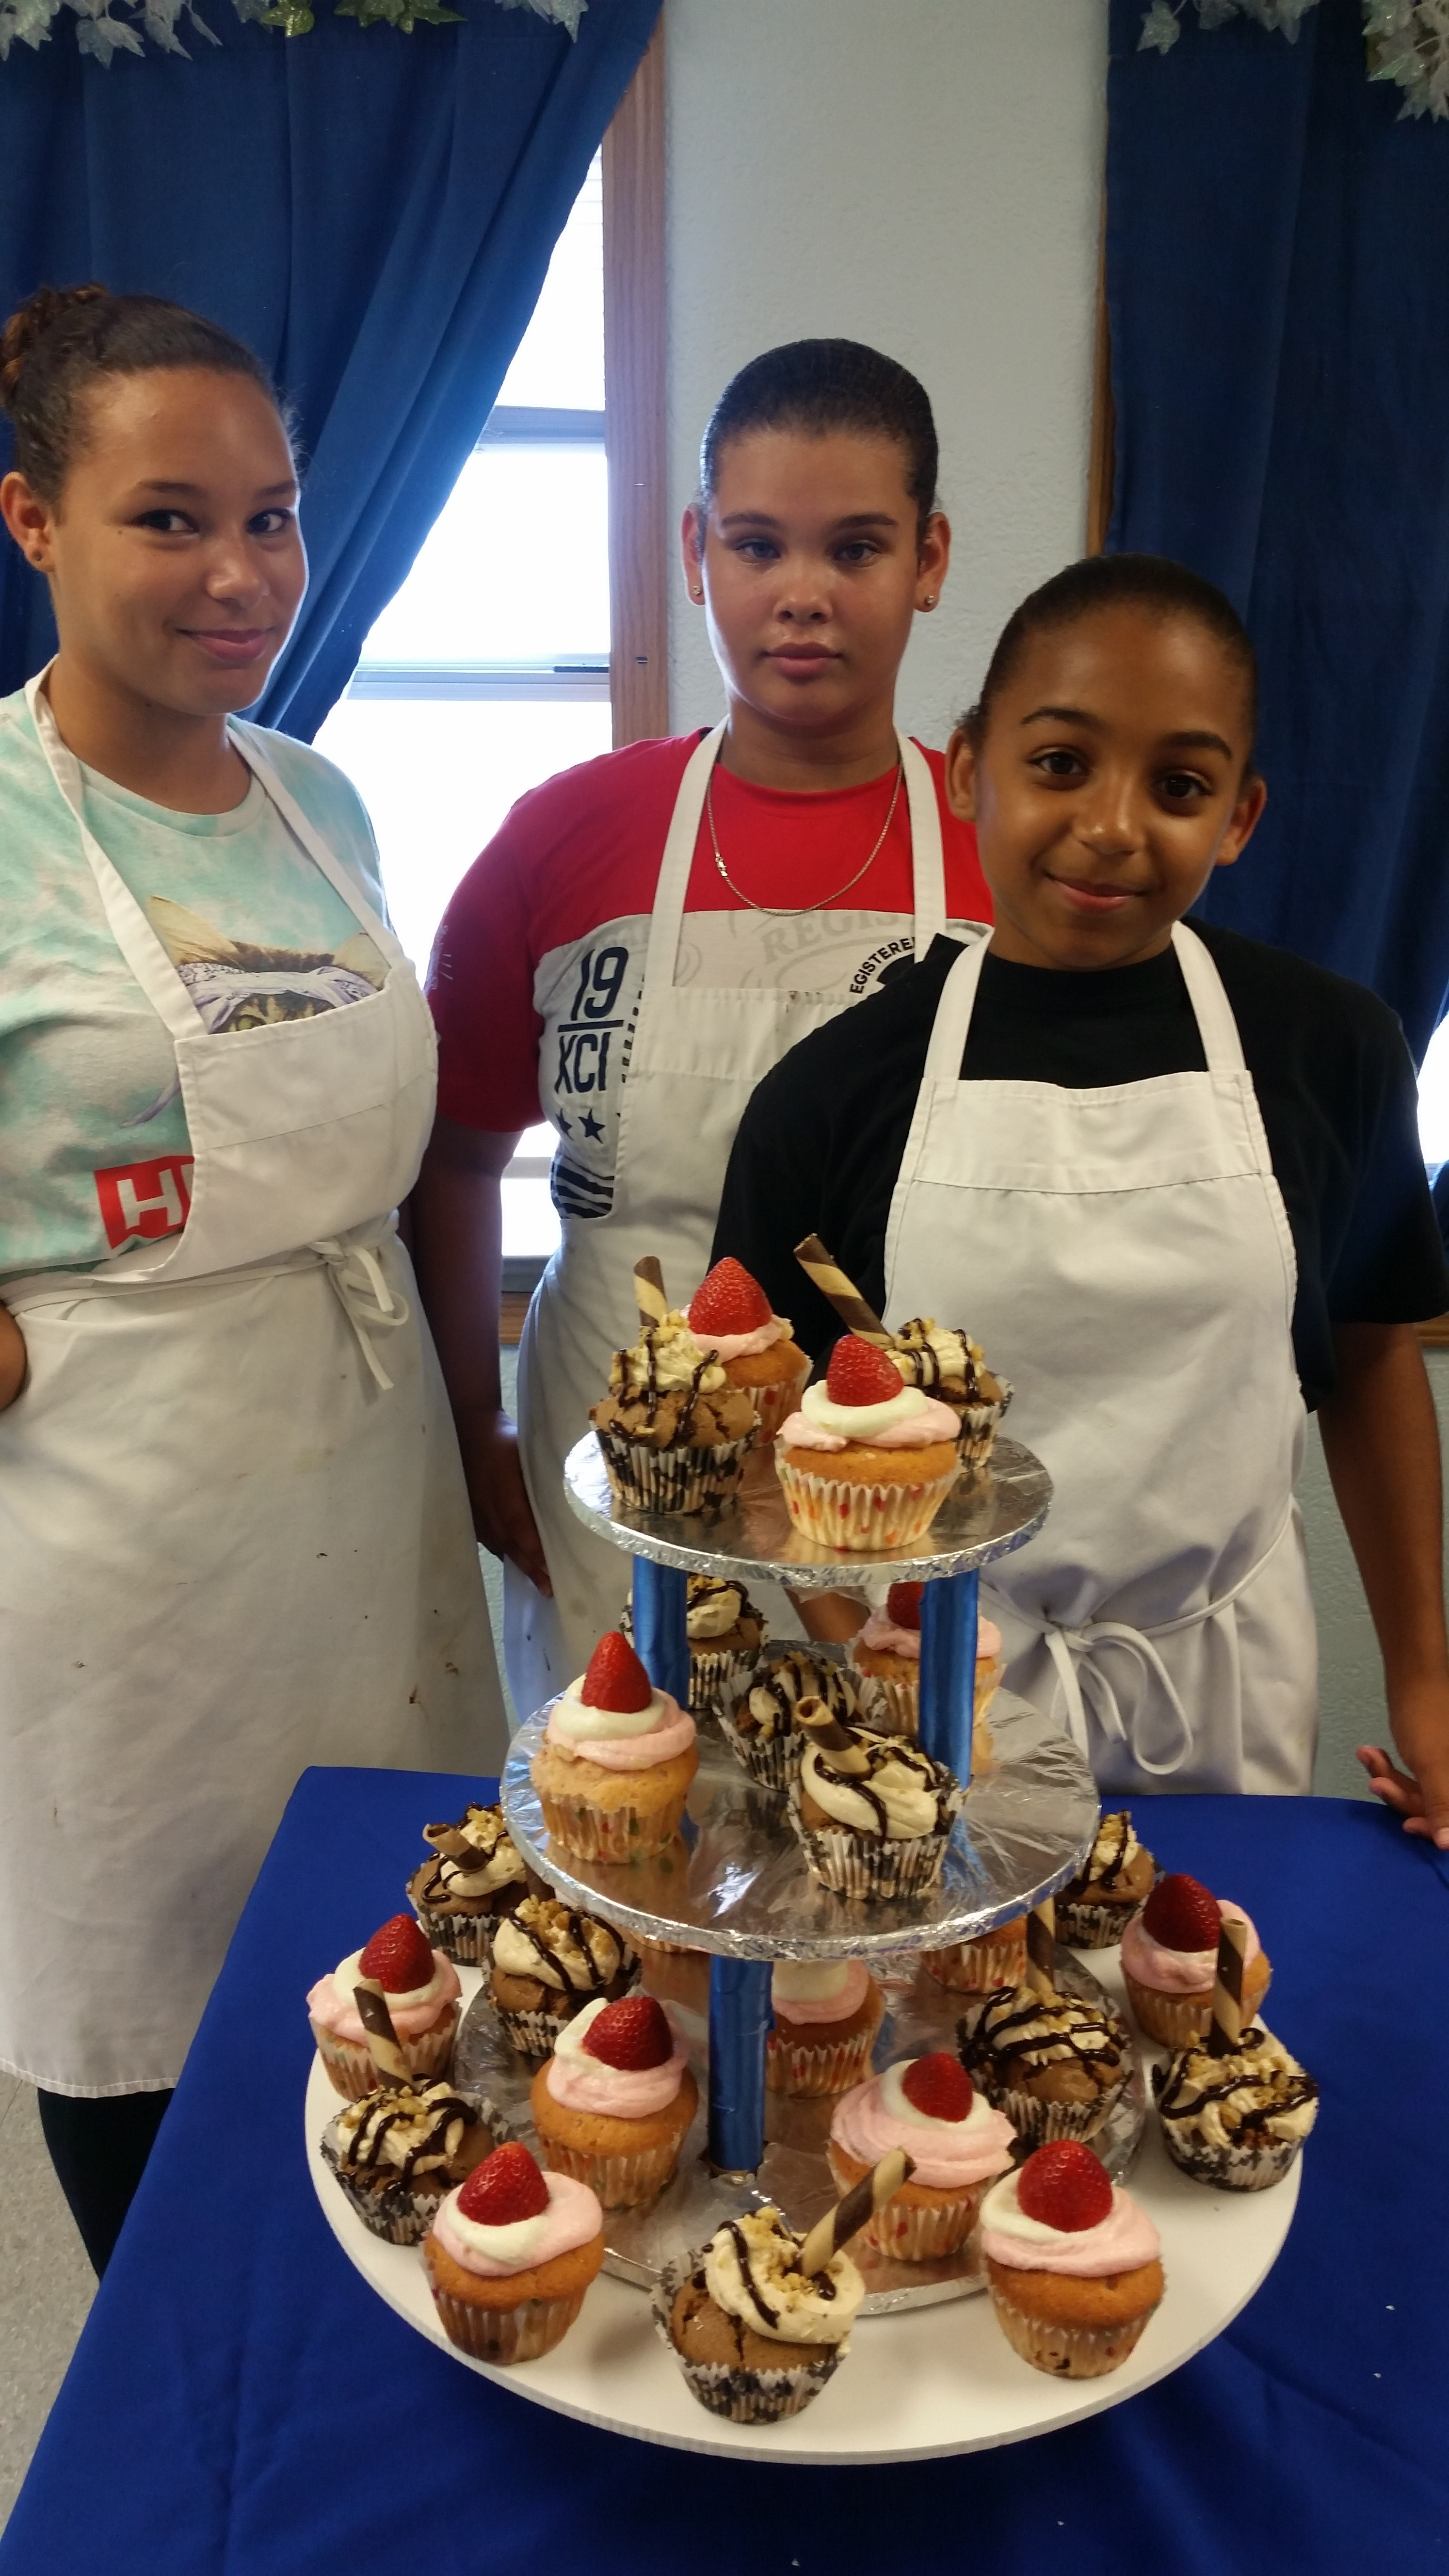 Team Vargas, Cayman Brac winners, will take on four other teams in the Cupcake War finale